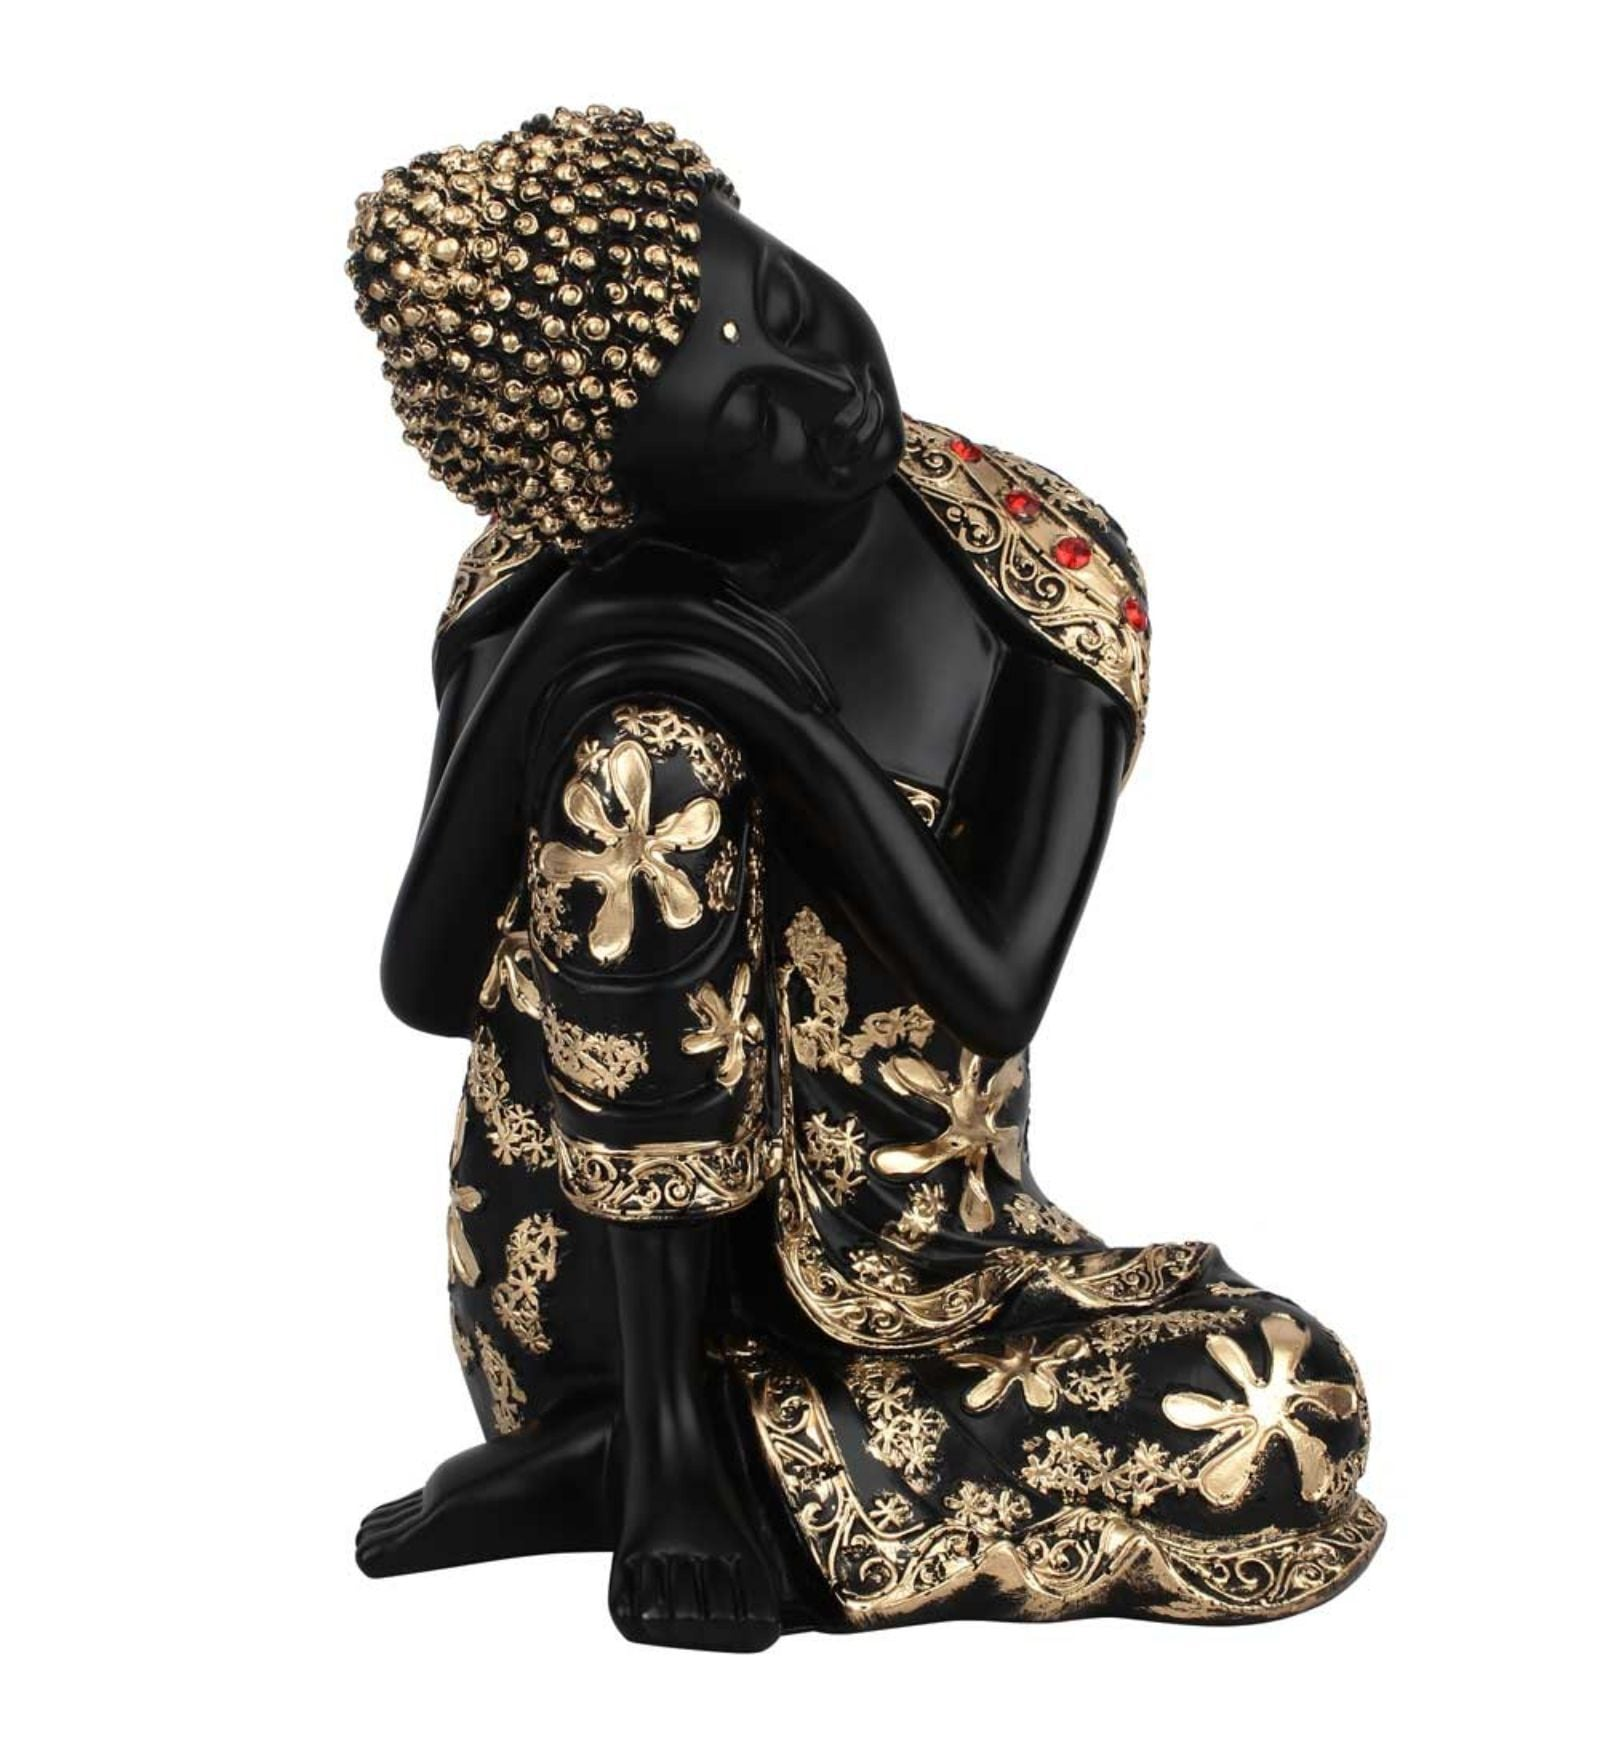 Black and Gold Polyresin Resin Craft Bodhisatva Thinking Buddha Home Decor Statue For Sale by Statue Studio